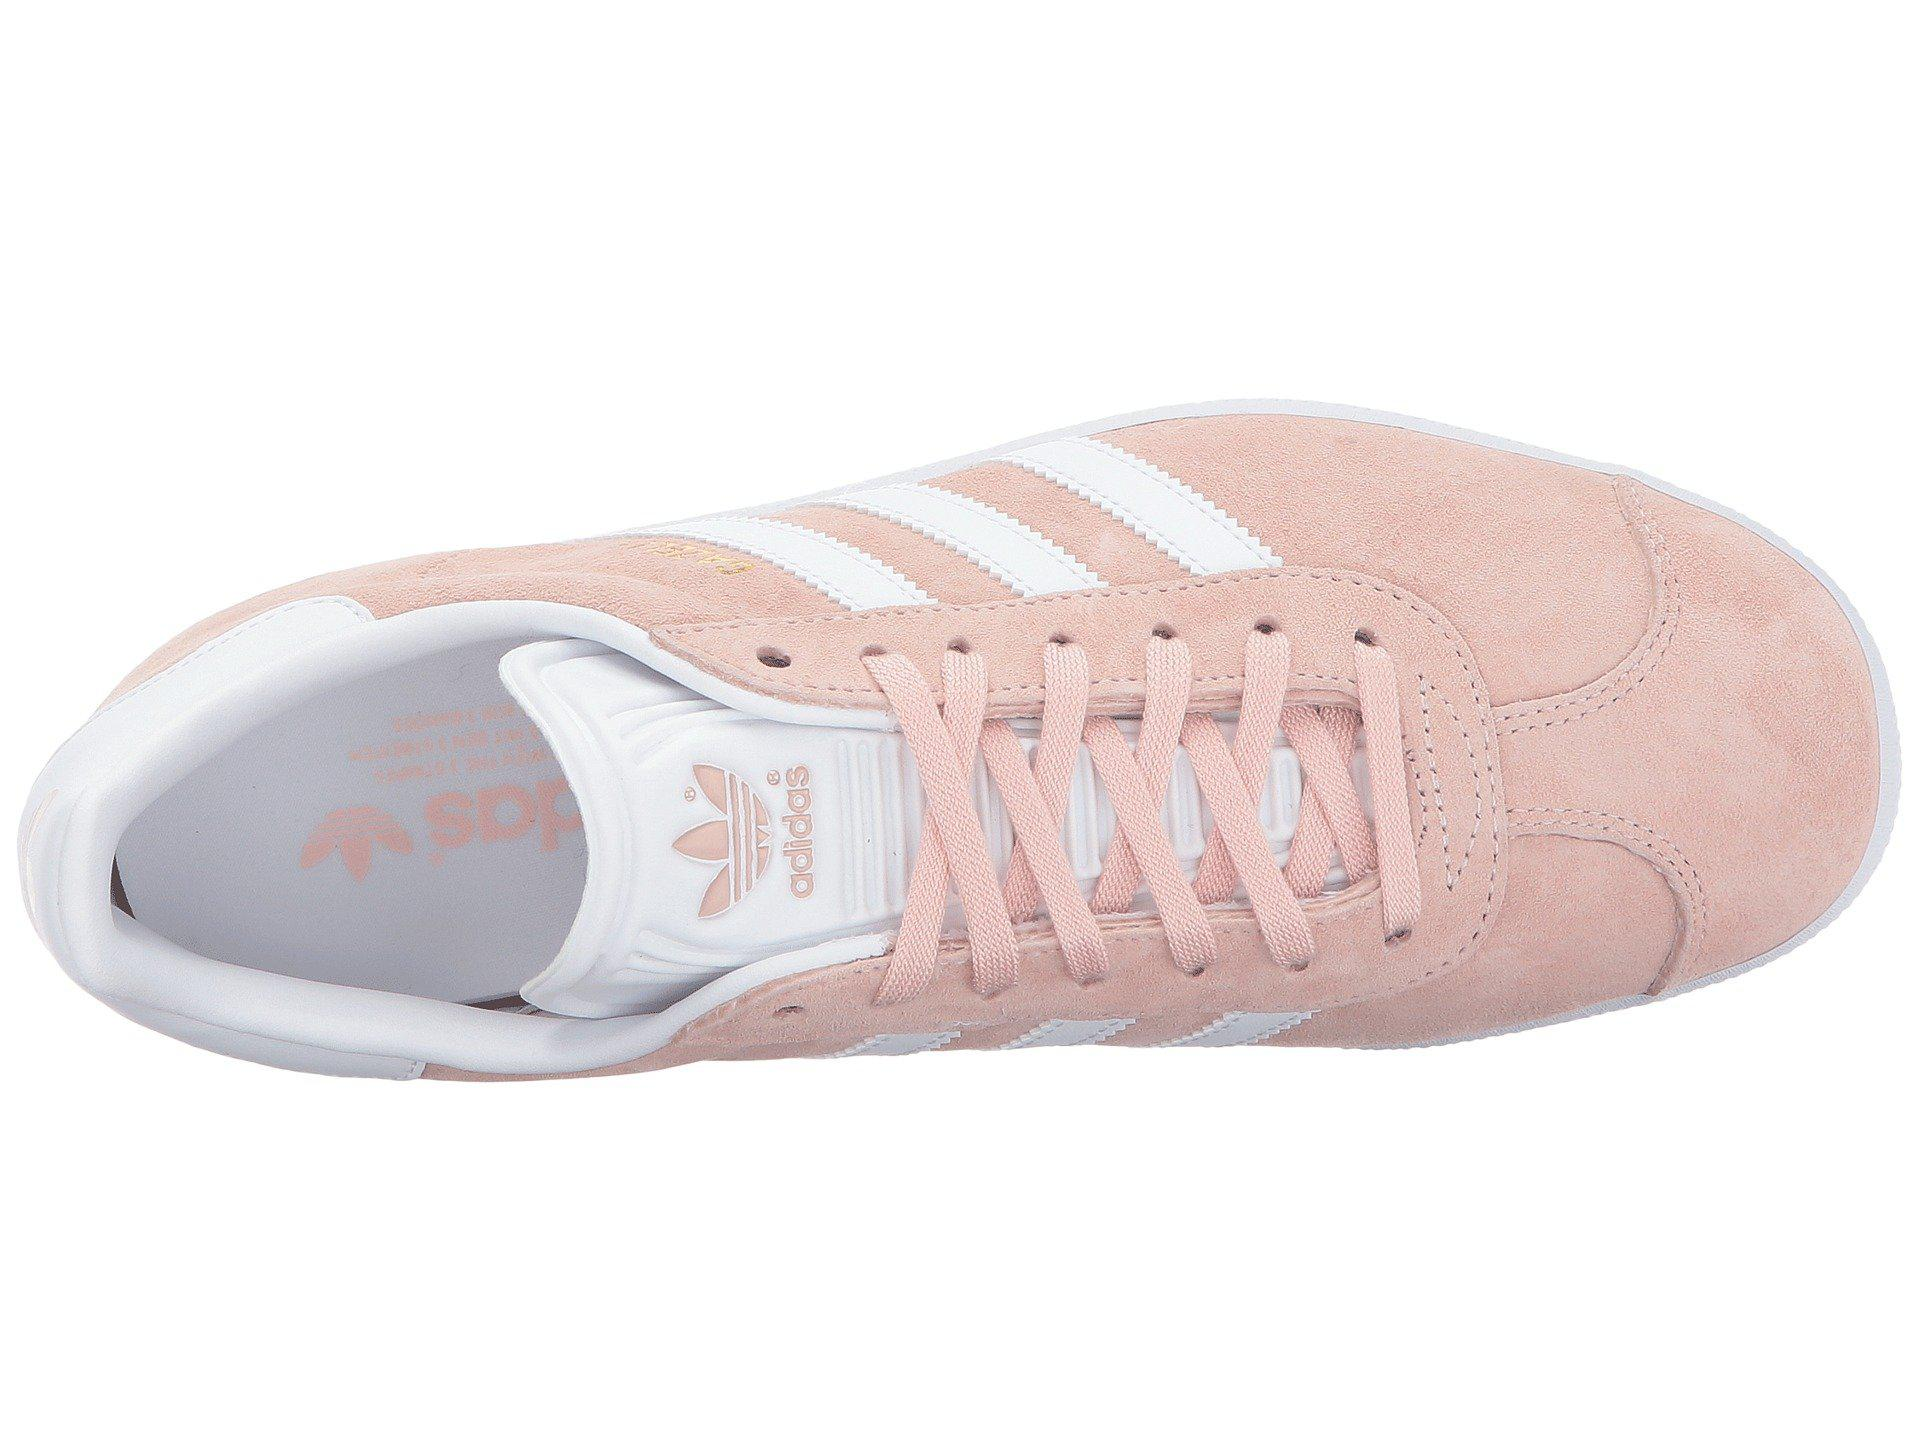 new style 403f9 2e7c1 Gallery. Previously sold at Zappos · Womens Adidas Gazelle ...